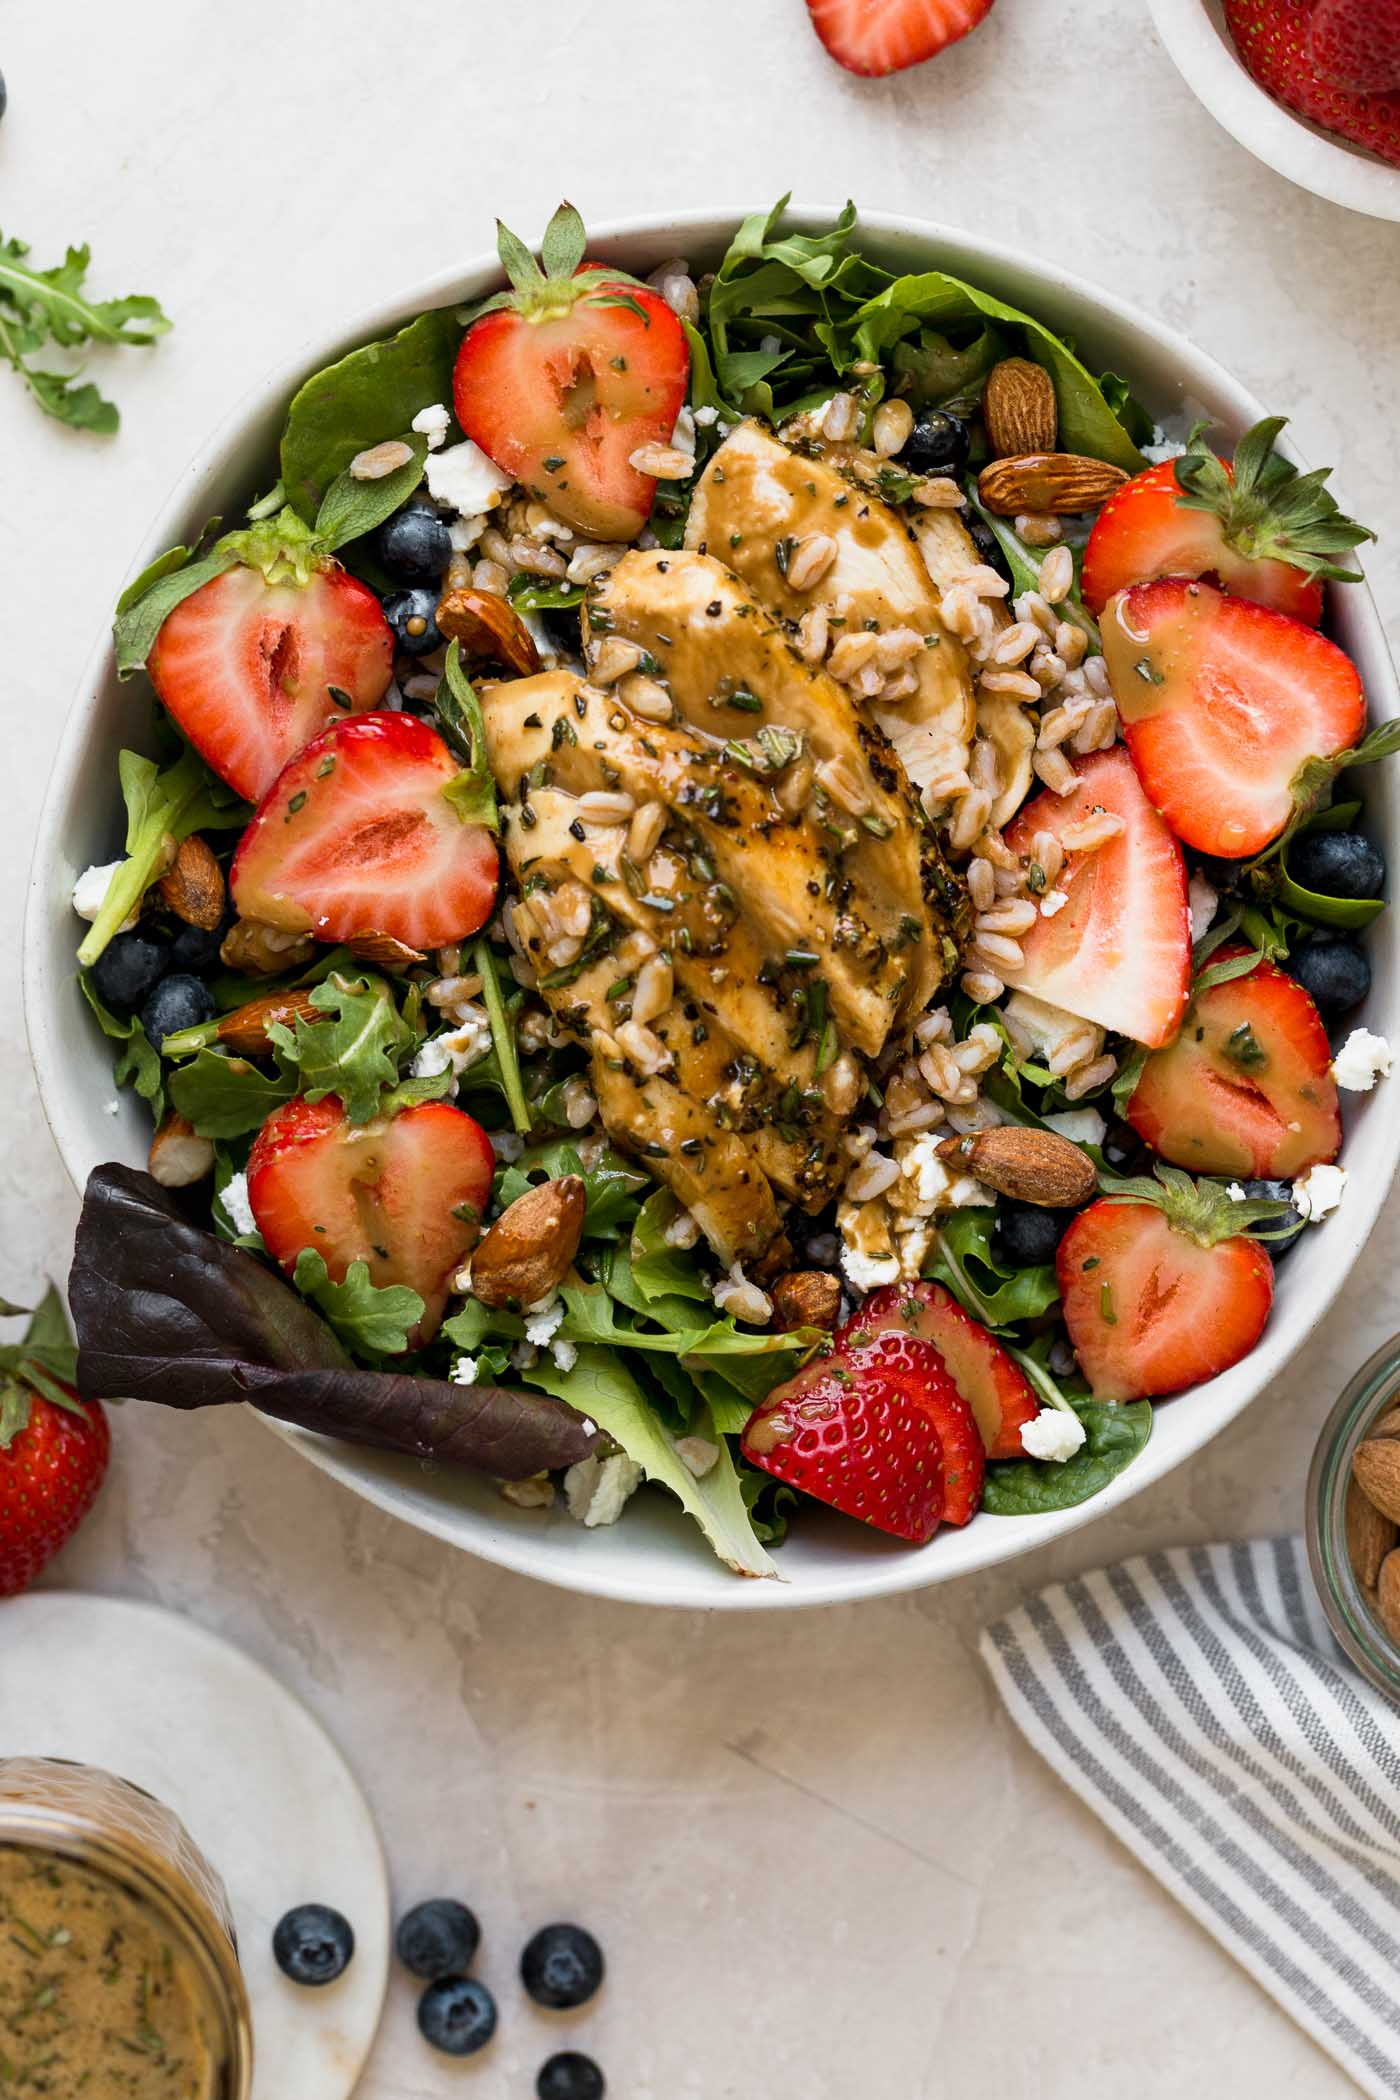 an easy & healthy strawberry salad just in time for spring!!! this strawberry salad is loaded with sweet strawberries & blueberries, tangy goat cheese, chopped almonds, farro, and gets topped with simple grilled chicken breast and drizzles of the most amazing homemade maple balsamic vinaigrette. the perfect healthy salad for meal prep, an easy weeknight dinner, or for summer entertaining! #playswellwithbutter #saladrecipe #strawberrysalad #healthyrecipe #lowcarbrecipe #balsamicvinaigrette